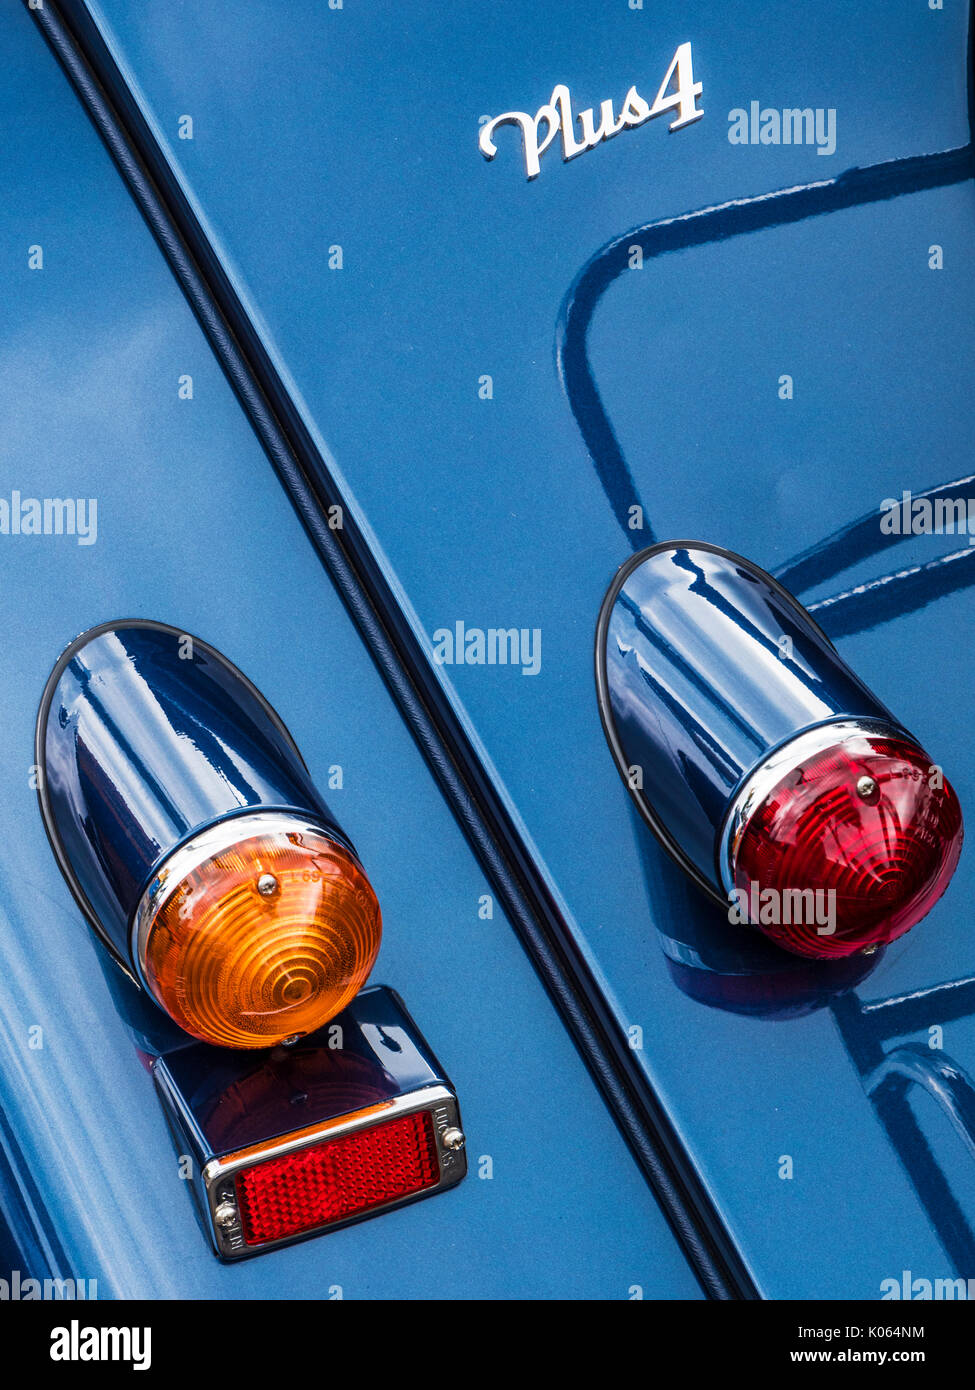 An abstract image of the badge and tail lights of a blue classic vintage Morgan Plus 4 sports car. - Stock Image